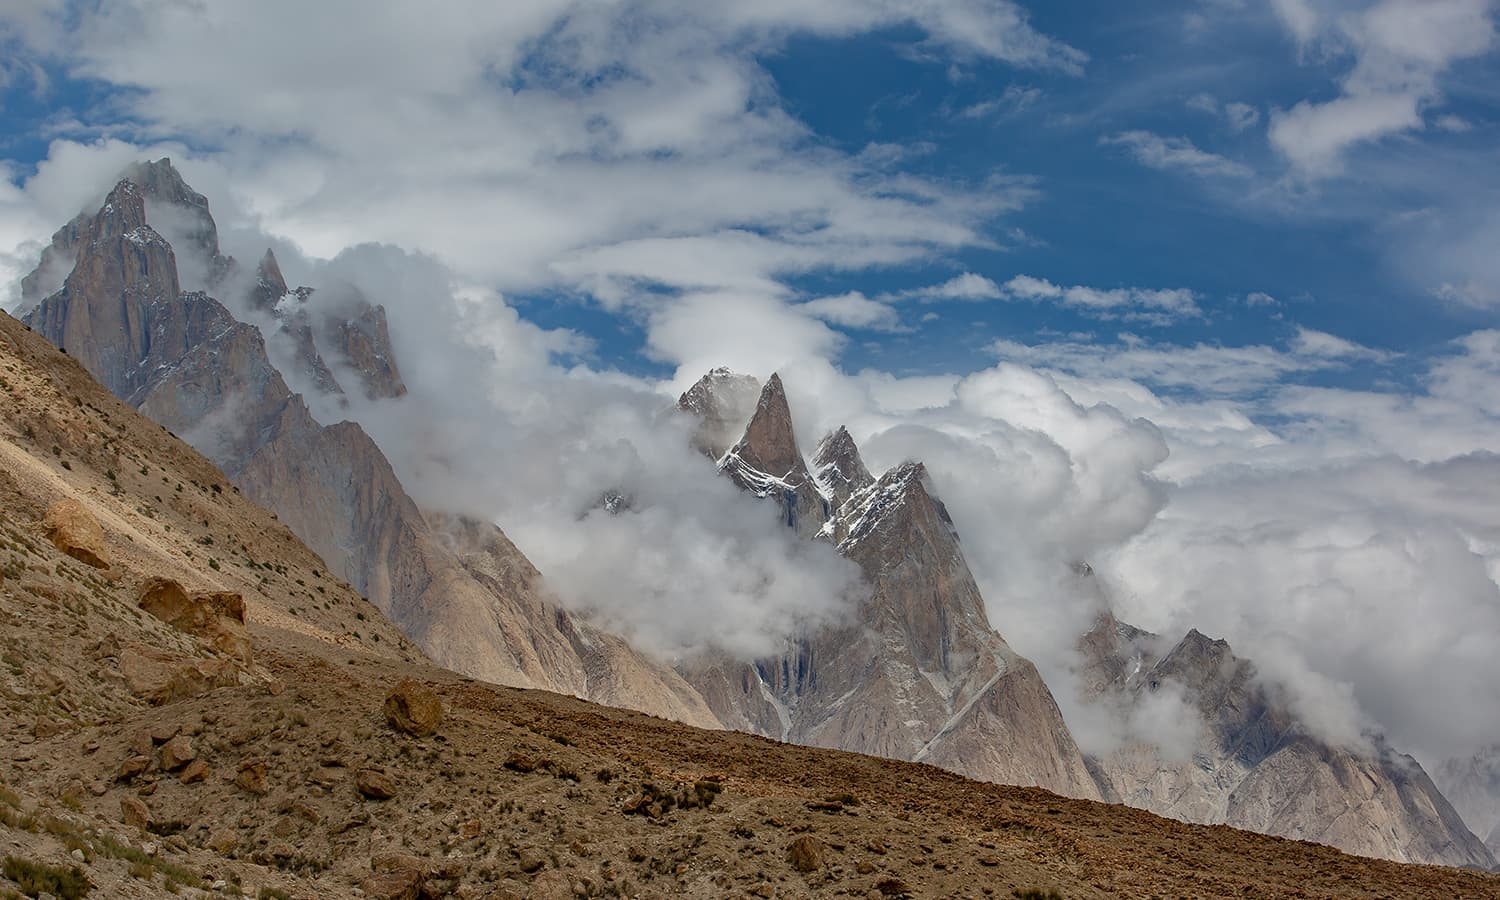 Views of the giants from Payu: Trango and Cathedral groups.